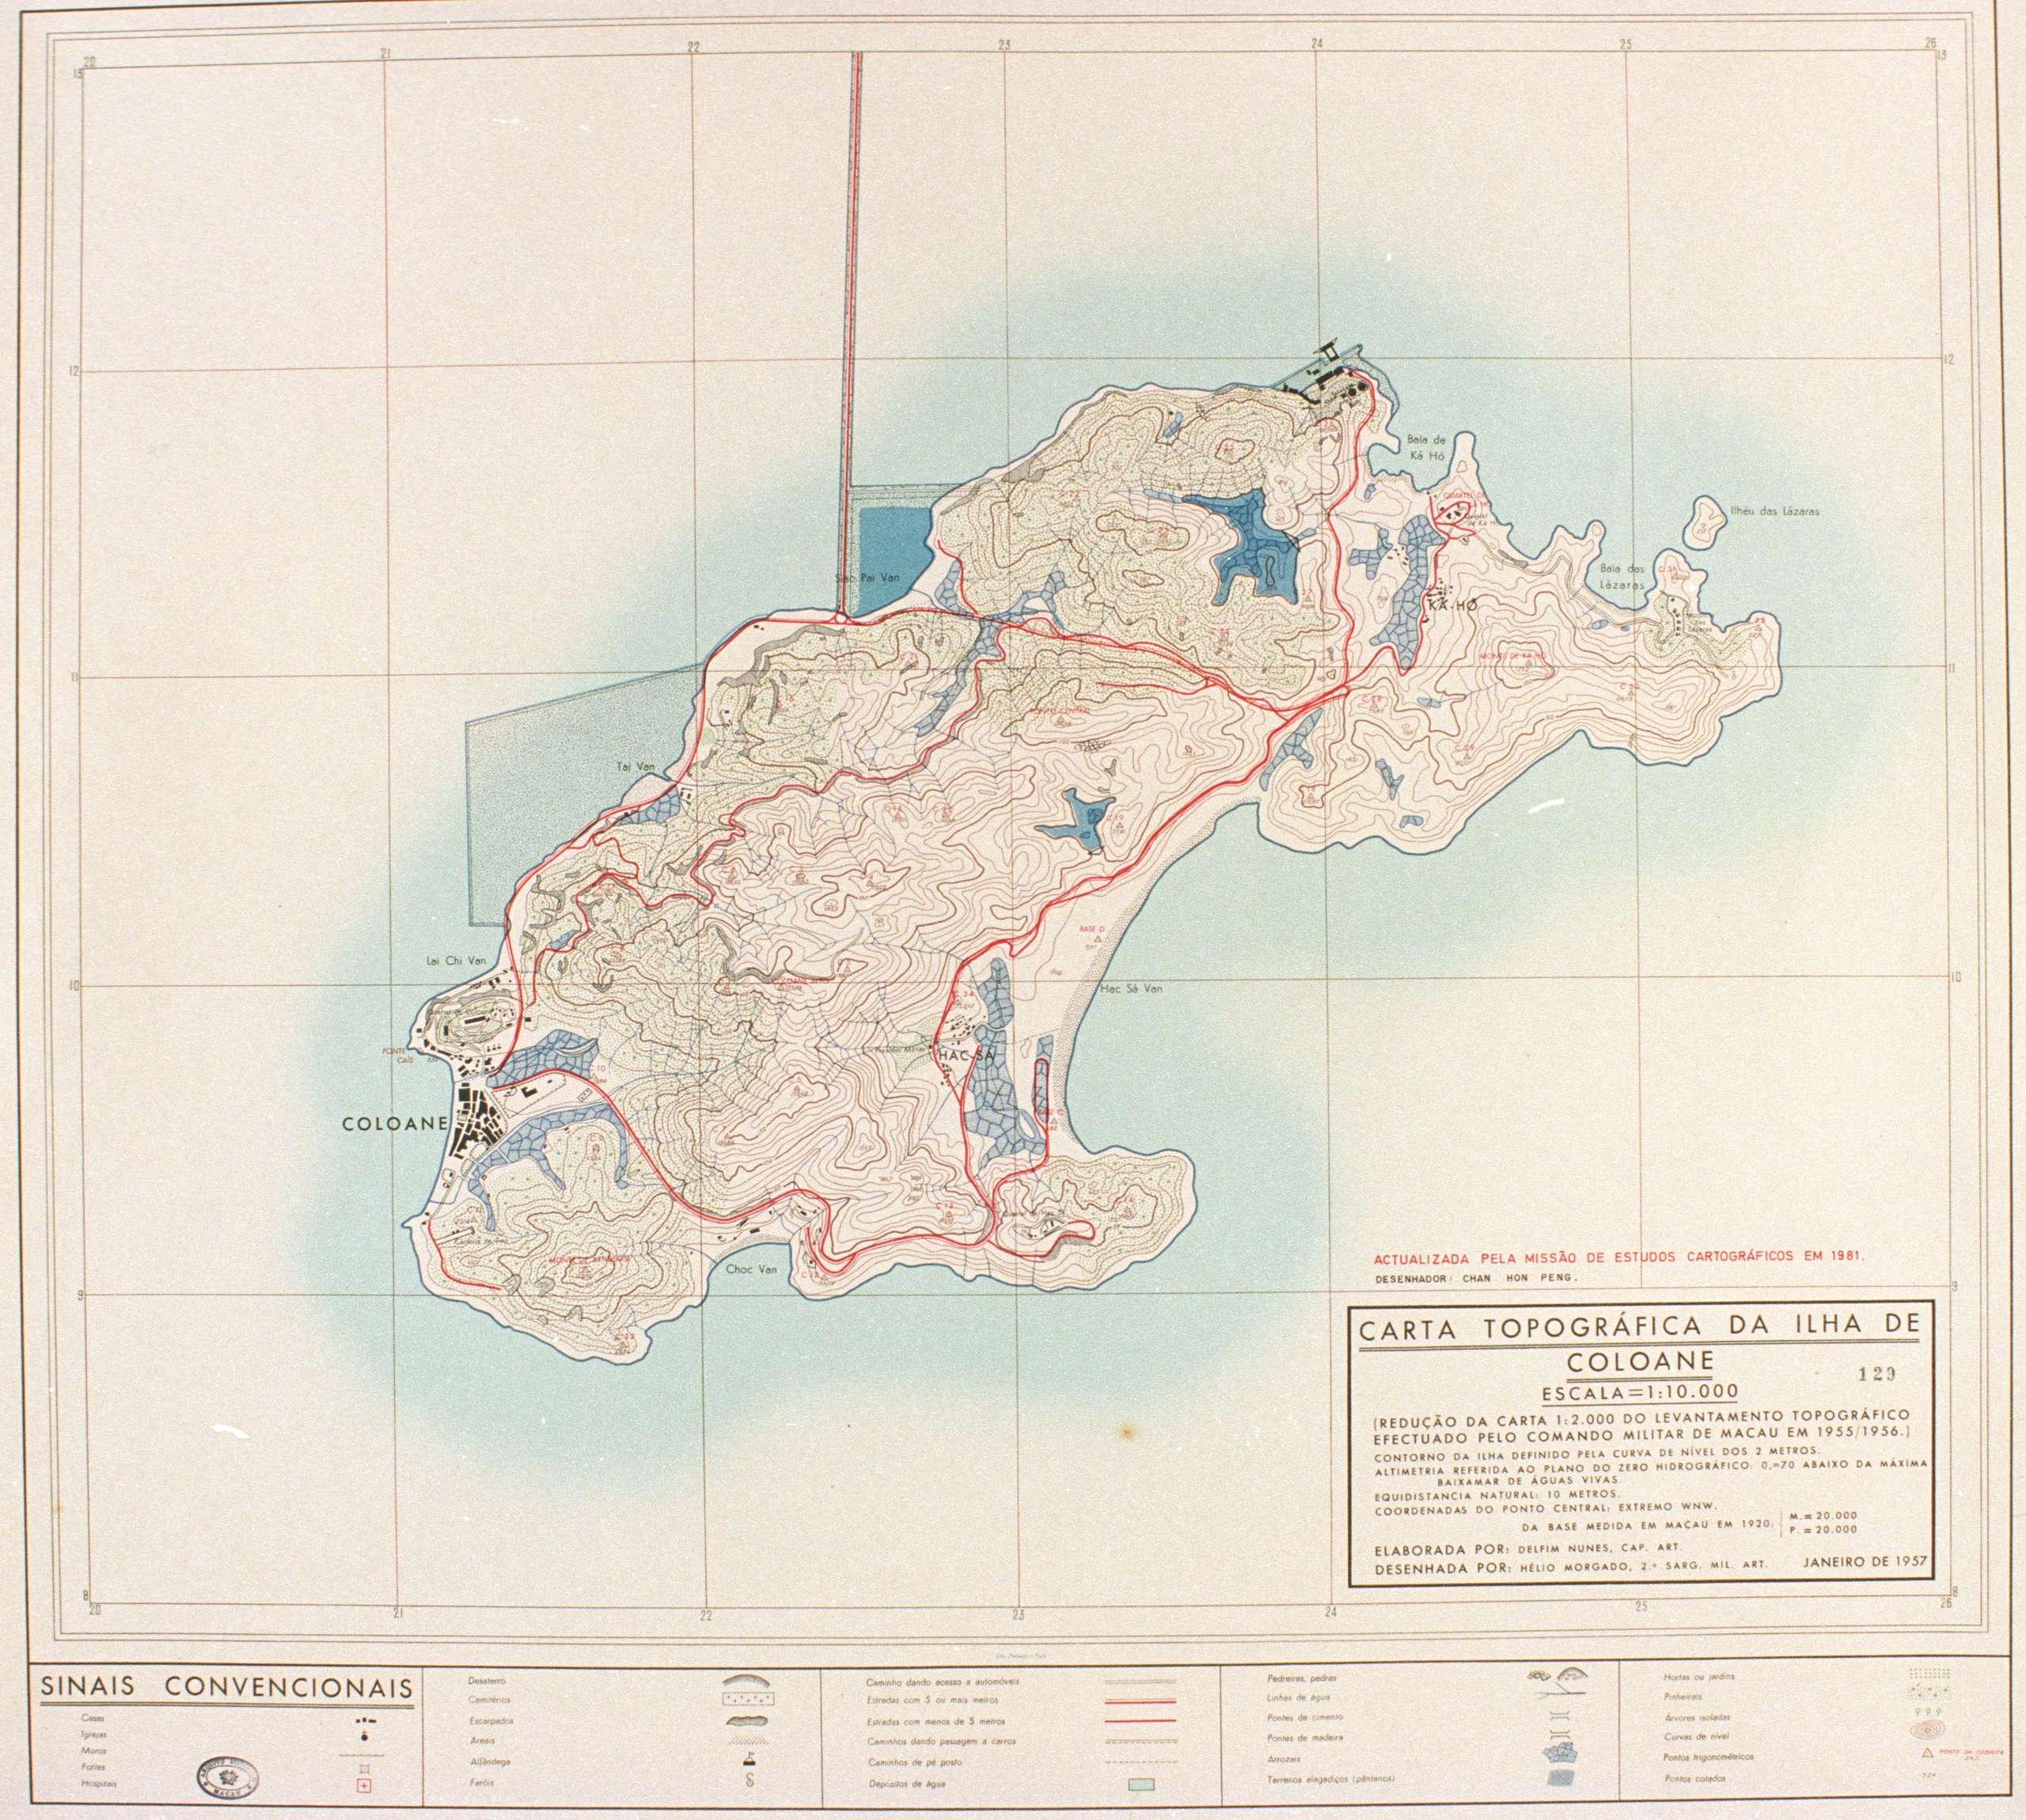 A map of Coloane from 1957